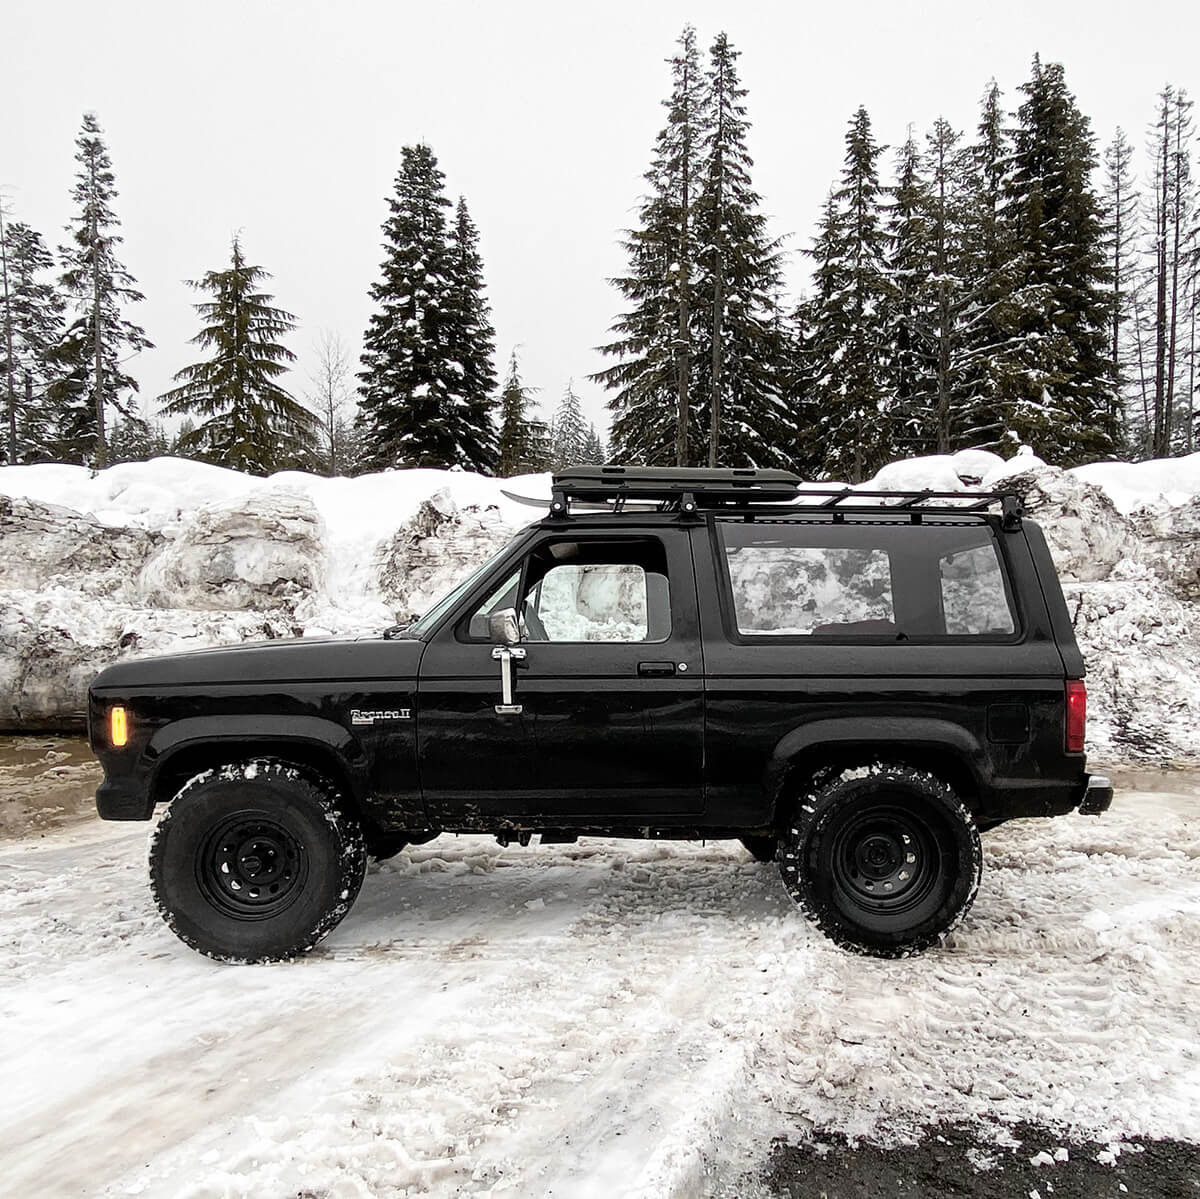 Ford Bronco II on 31 inch off-road wheels